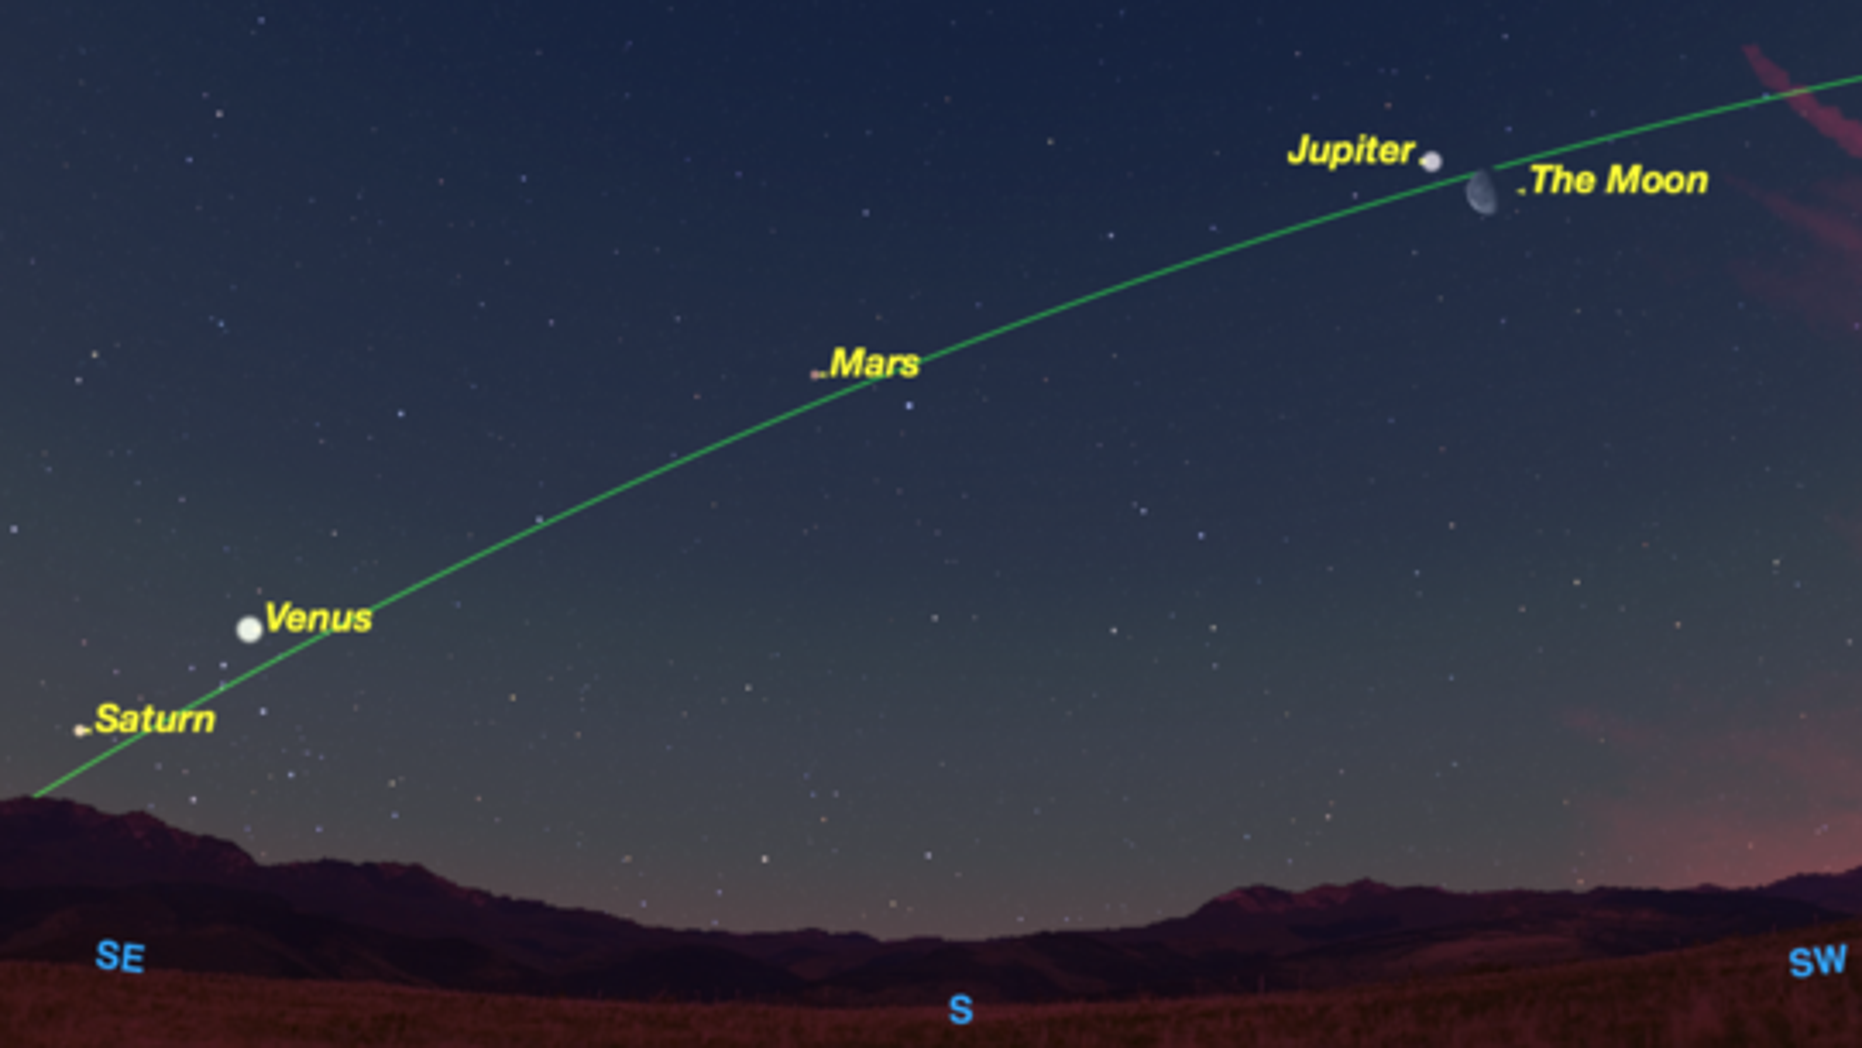 At dawn on Thursday, Dec. 31, the four brightest planets outline the ecliptic, the path followed by the sun and moon. The moon visits each in turn over the next week.